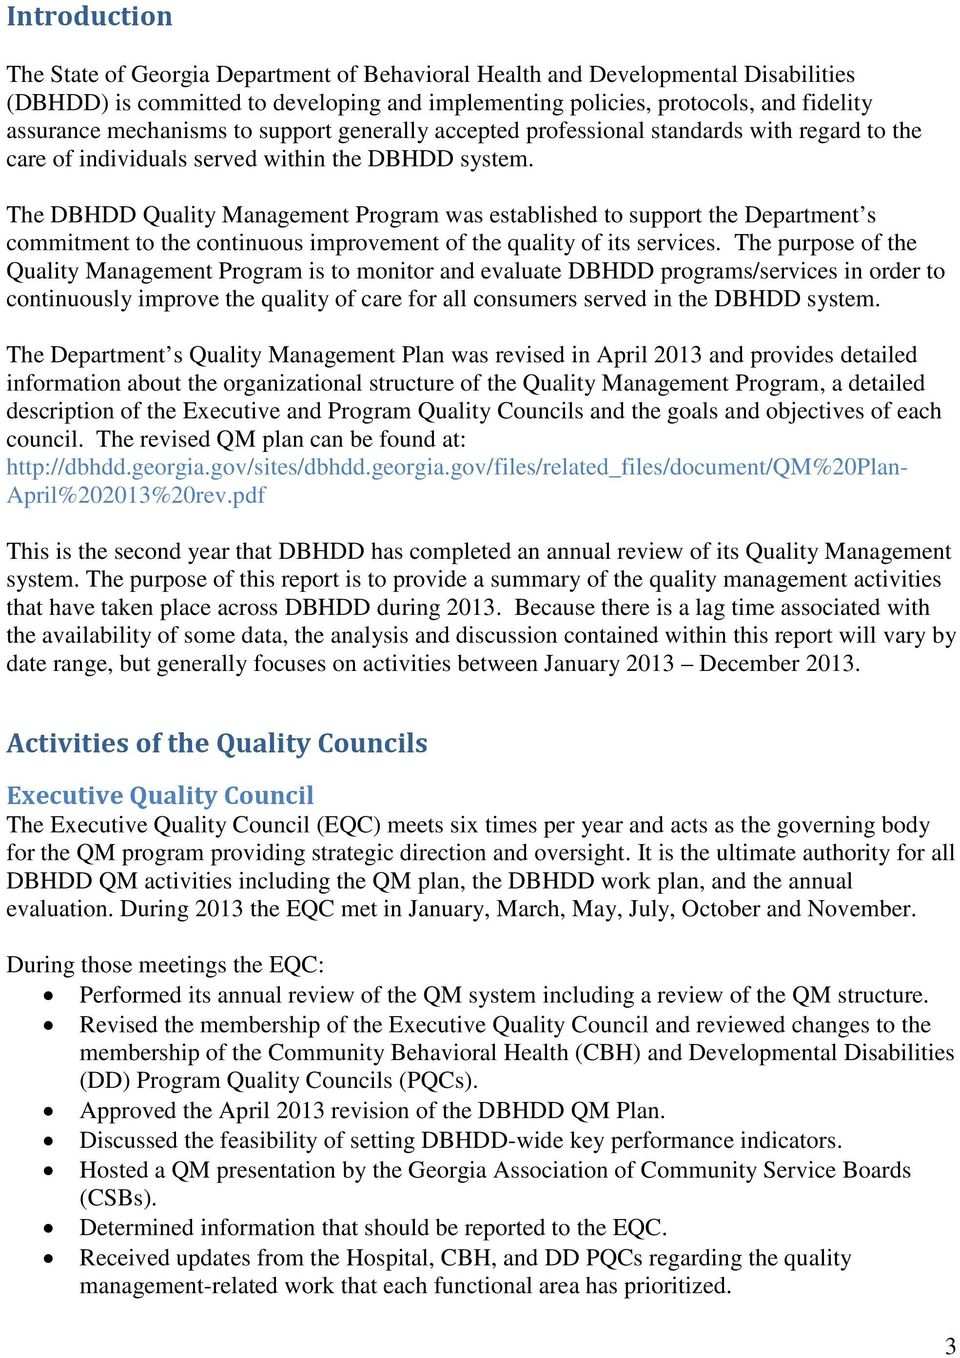 The DBHDD Quality Management Program was established to support the Department s commitment to the continuous improvement of the quality of its services.